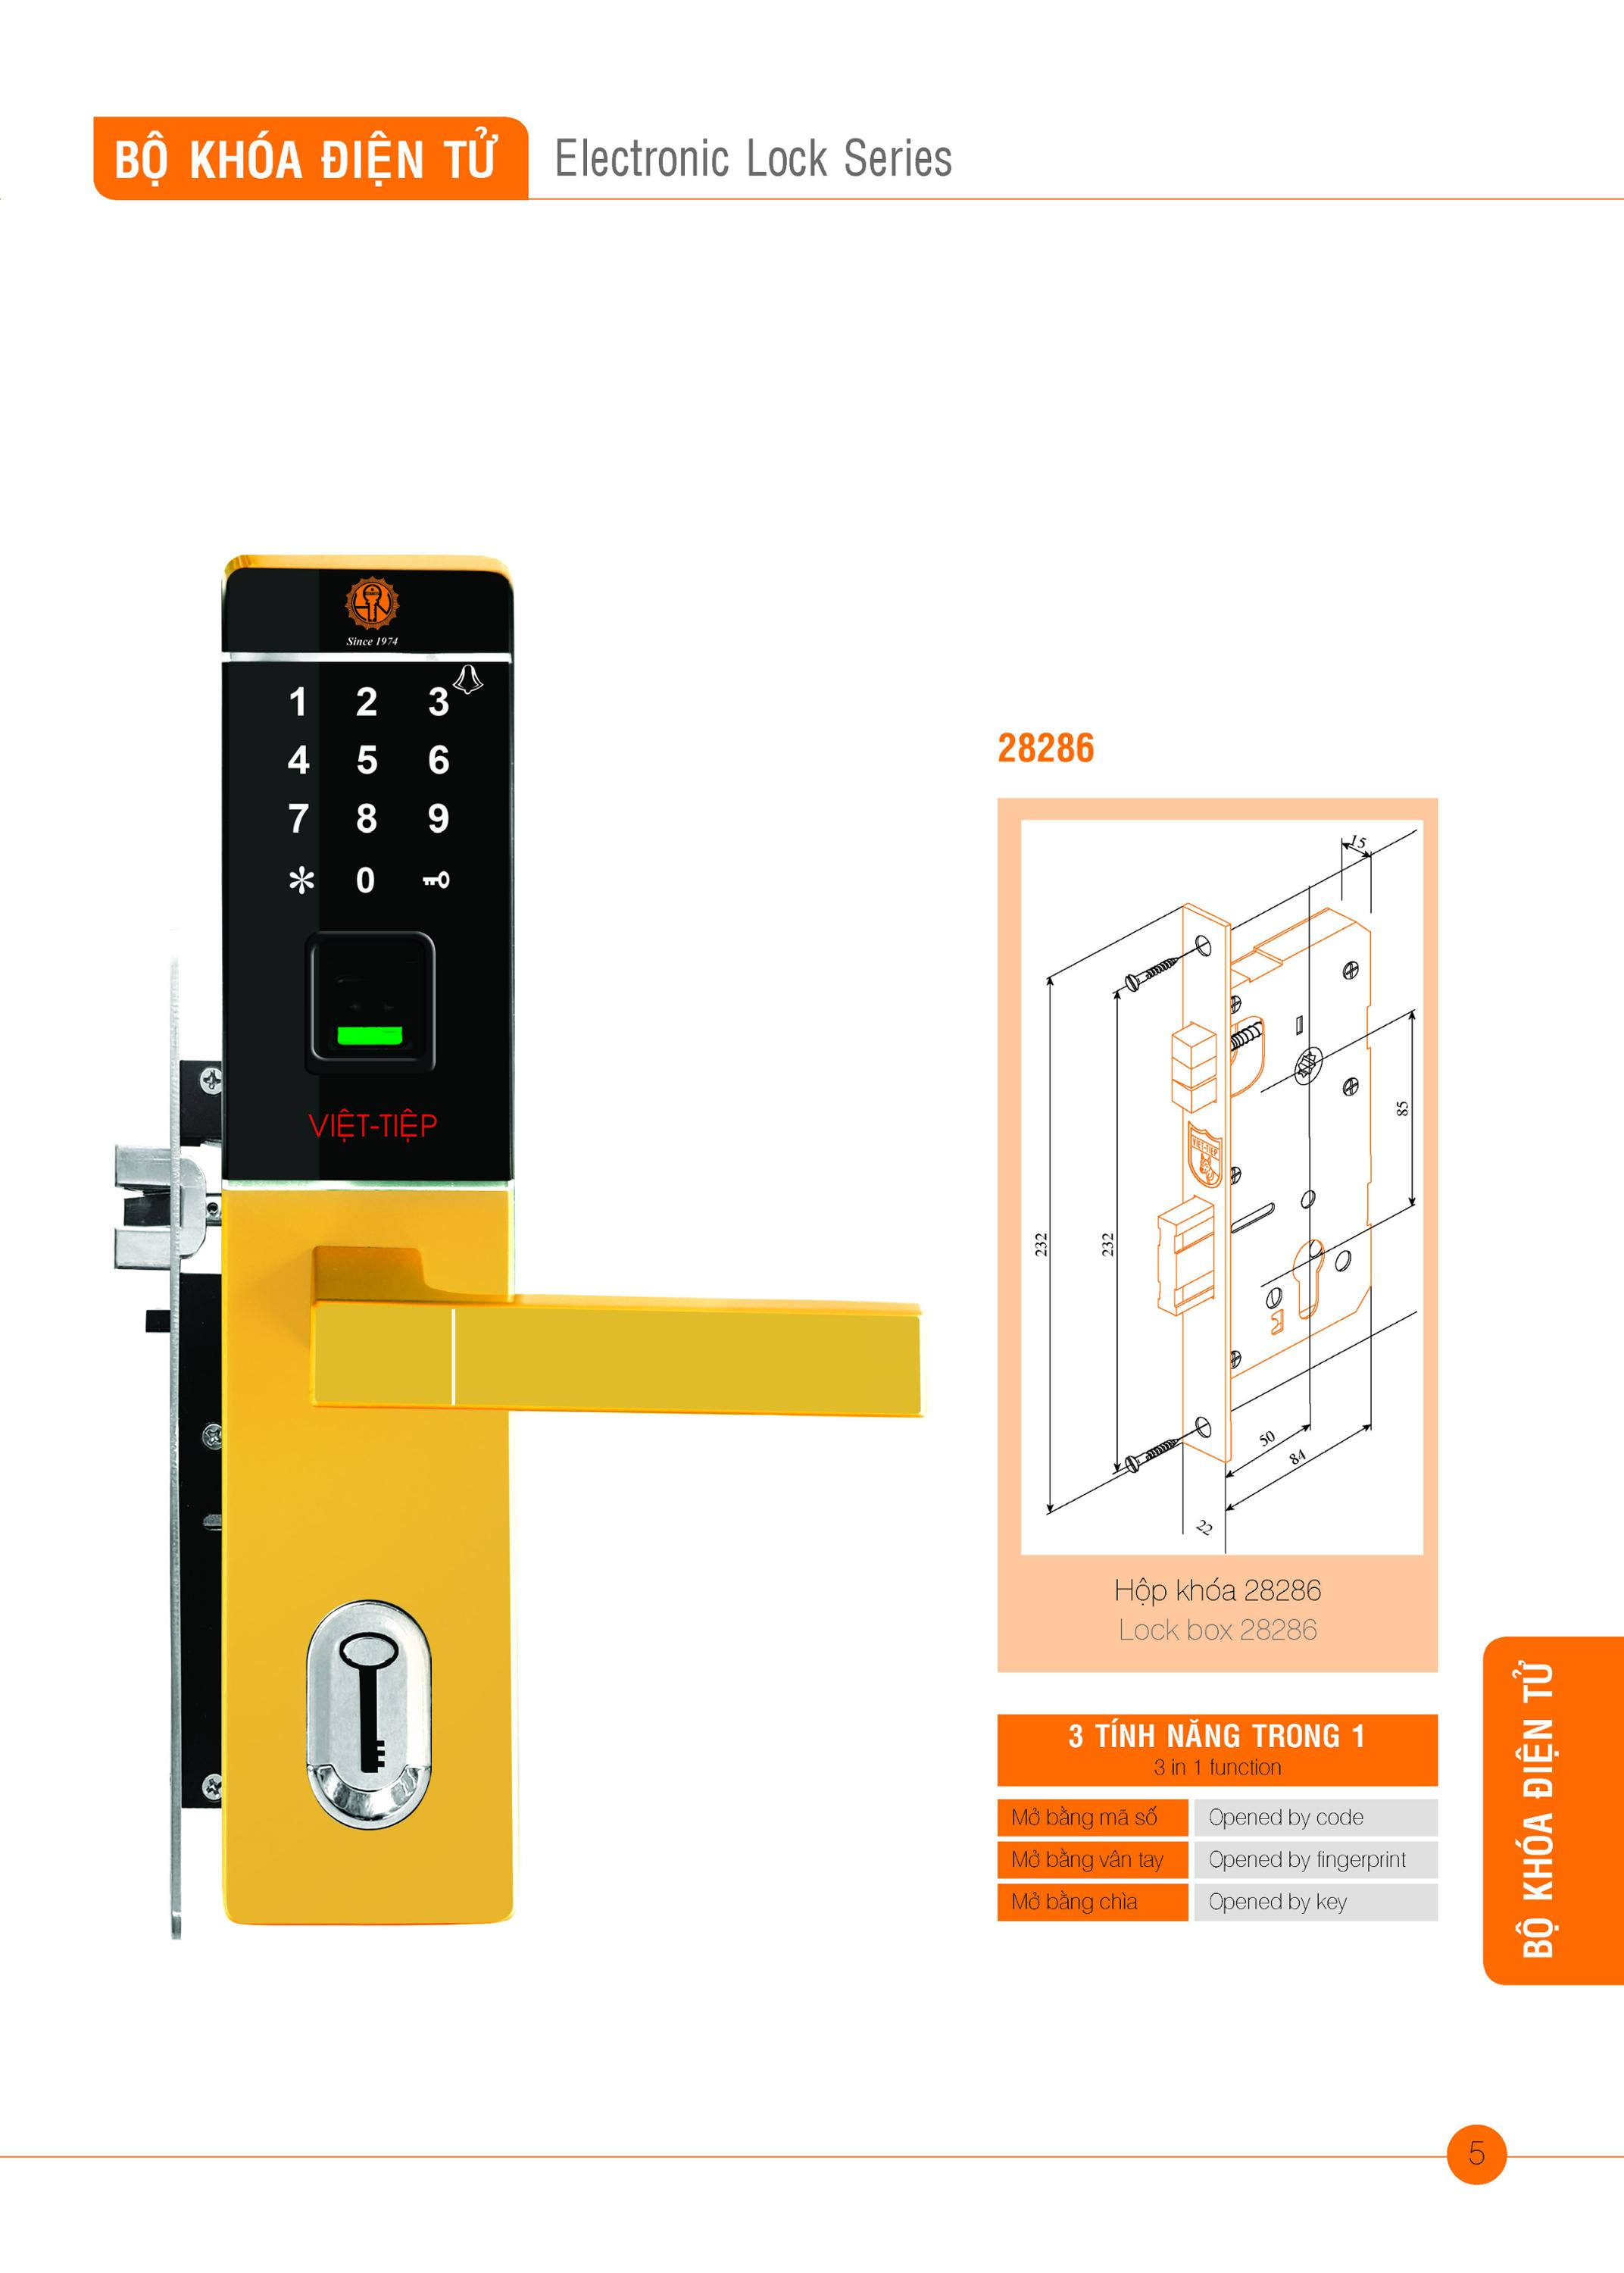 Electronic Lock series 3 in 1